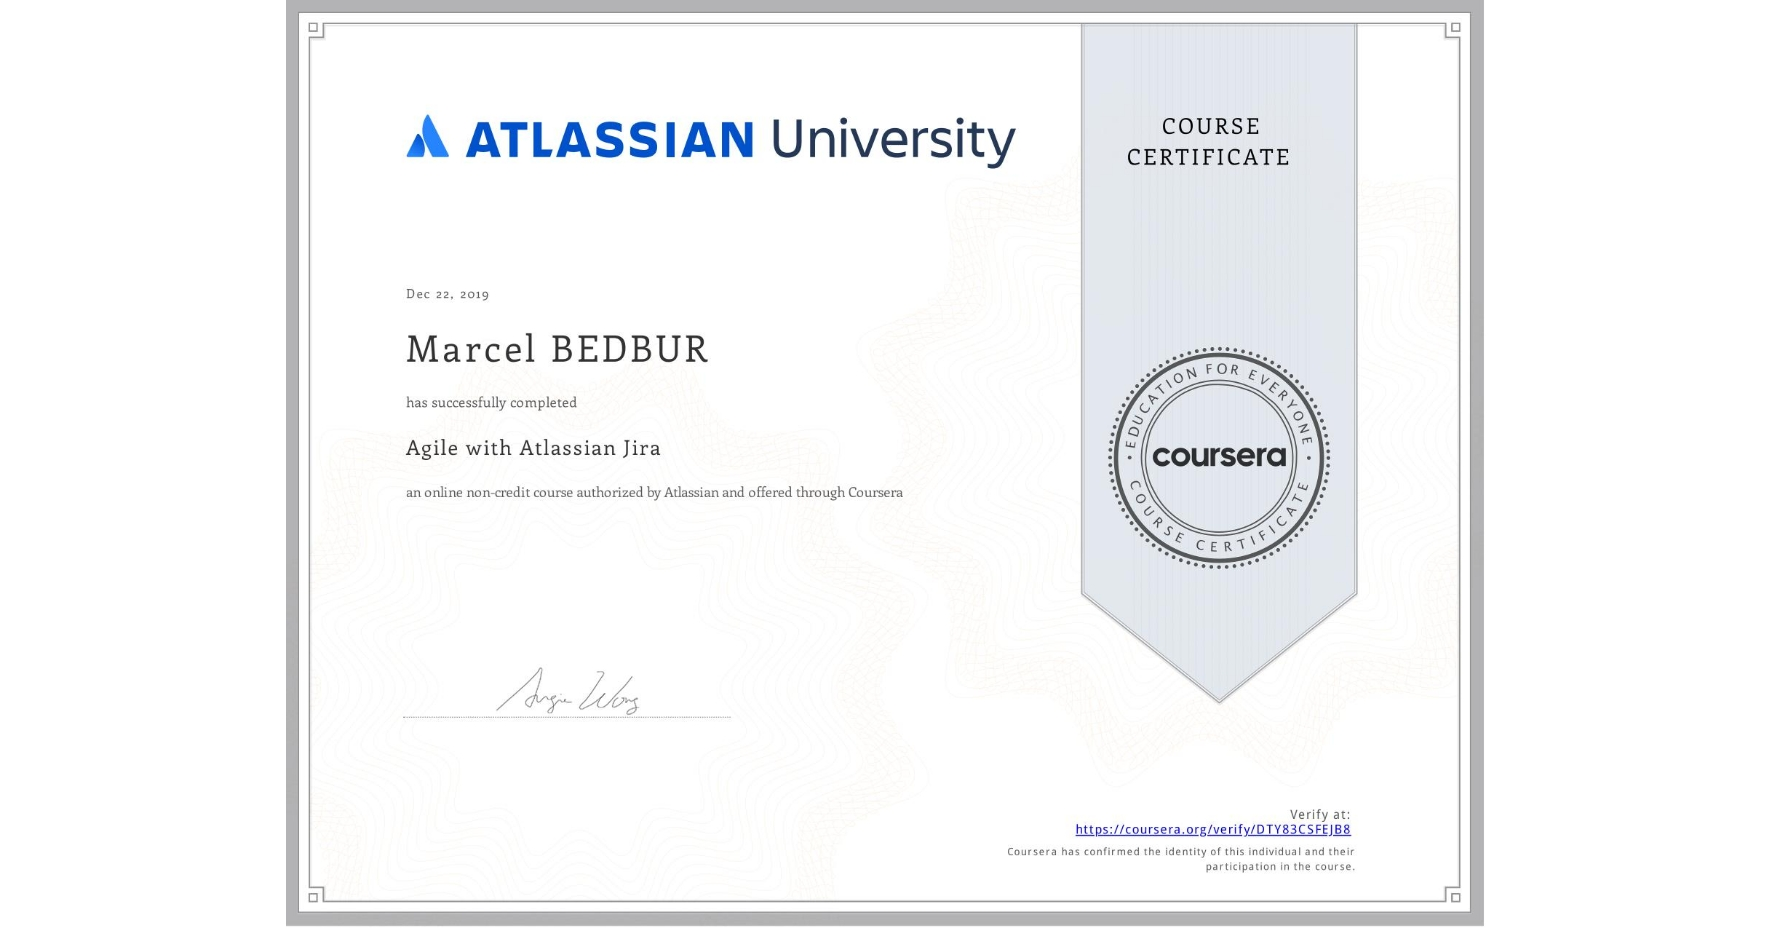 View certificate for Marcel BEDBUR, Agile with Atlassian Jira, an online non-credit course authorized by Atlassian and offered through Coursera